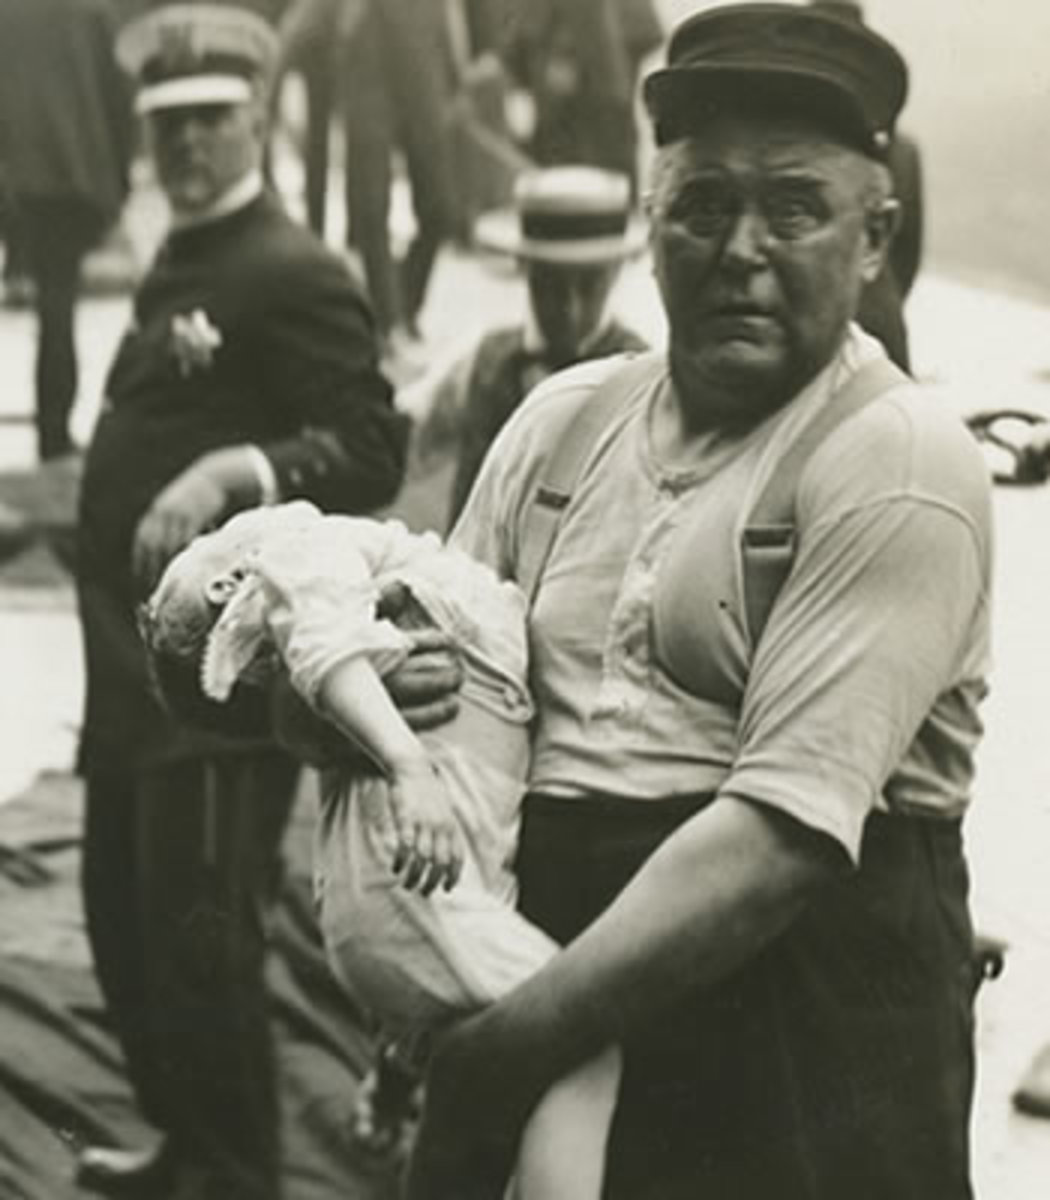 Chicago fireman Leonard Olson rescuing a child.